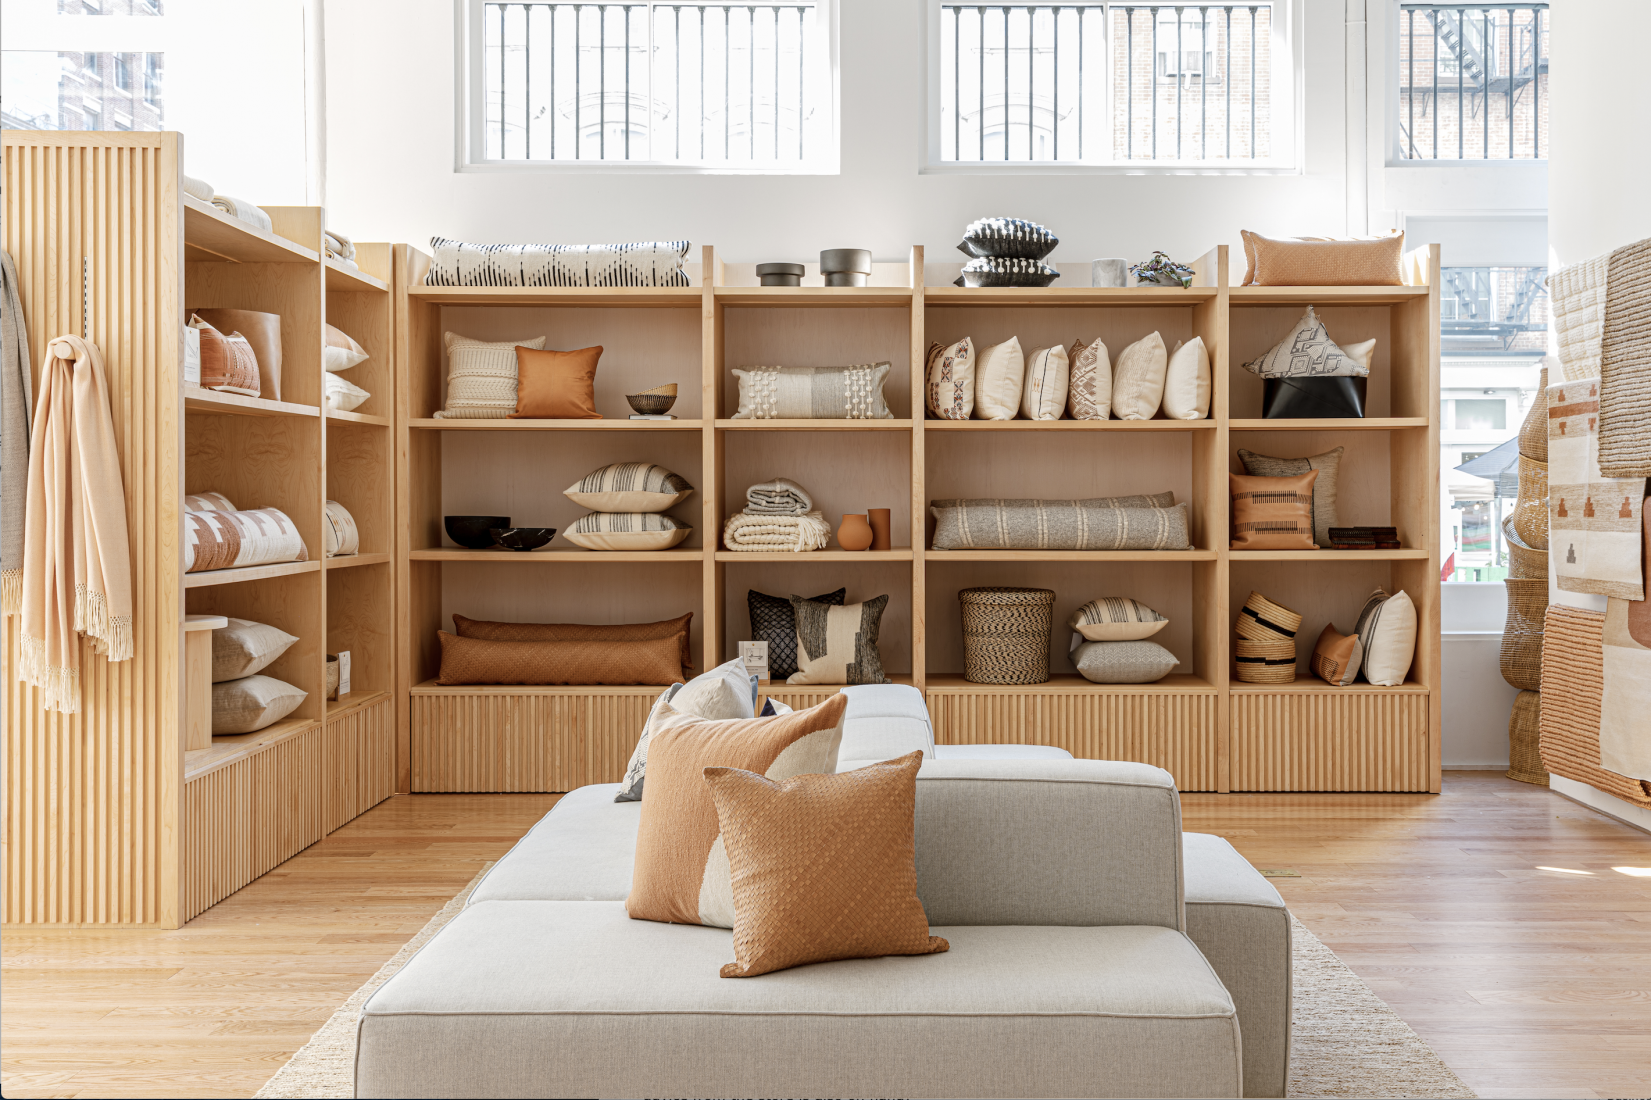 The Citizenry Opens Hygge-Inspired Flagship Store in SoHo